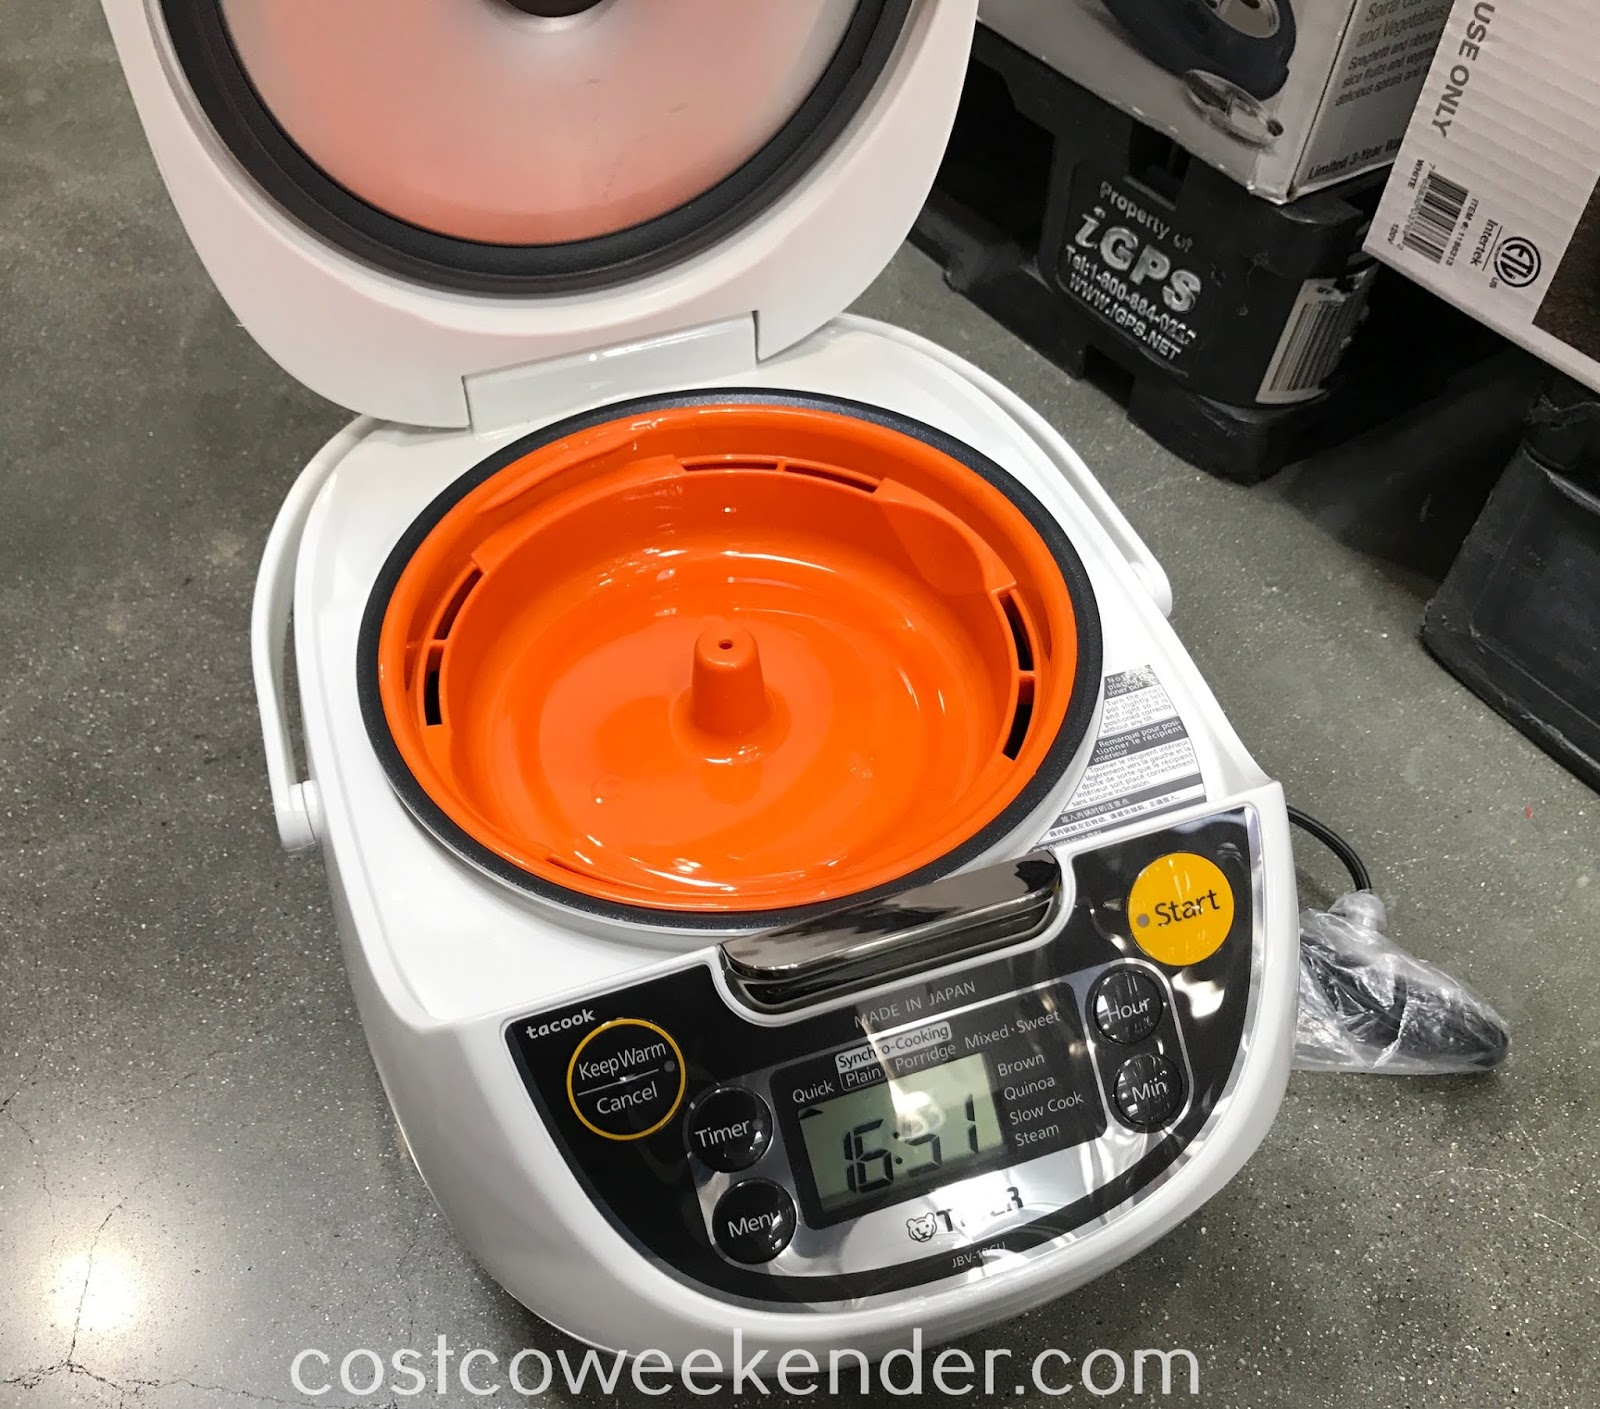 Making rice just got easier with the Tiger Rice Cooker/Warmer